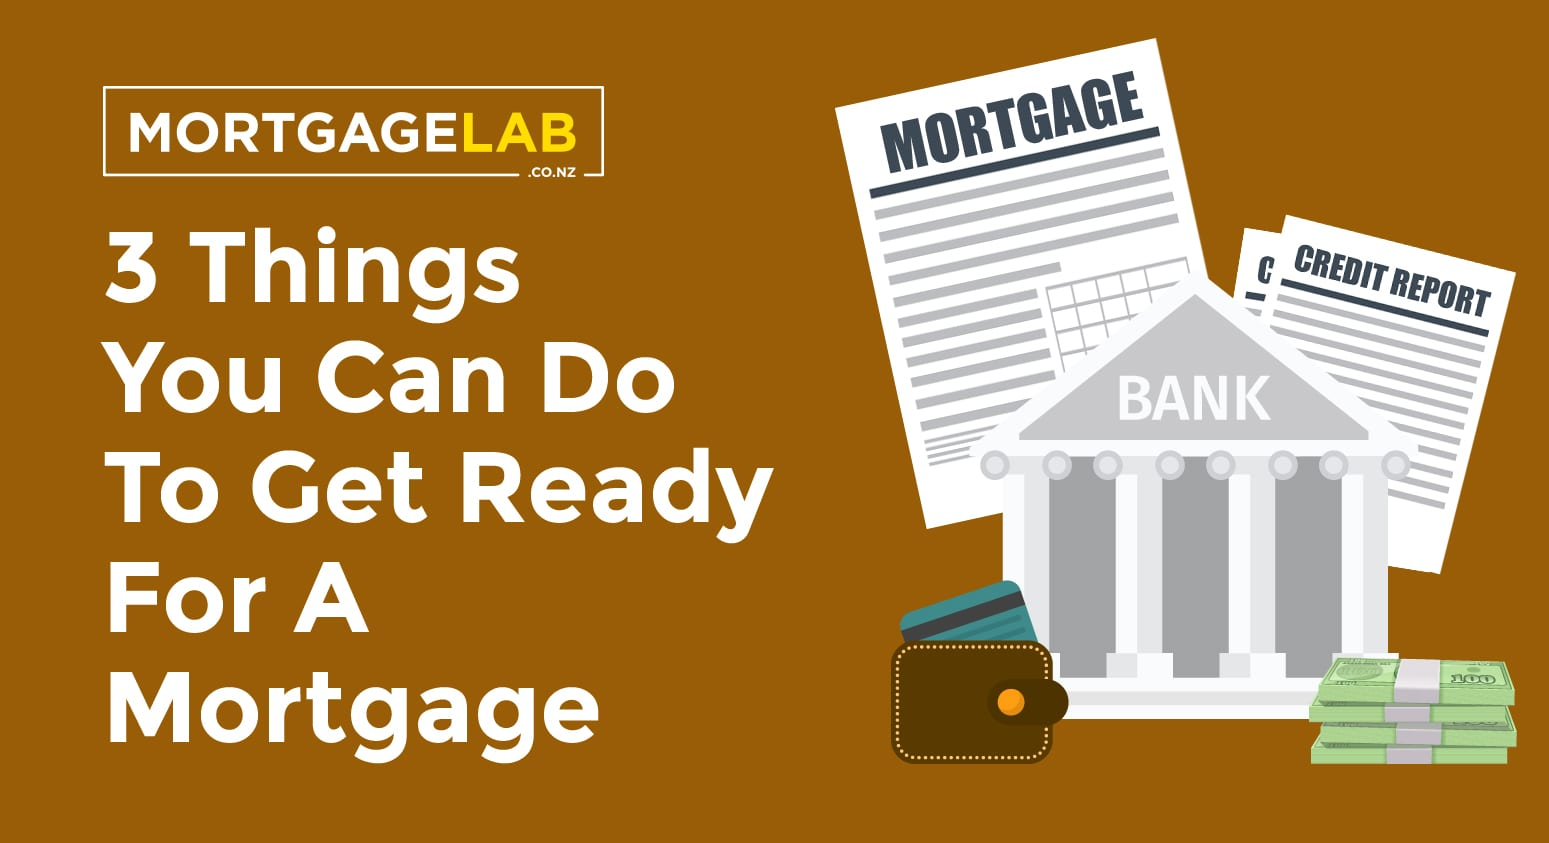 3 Thinks you can do to get ready for a mortgage